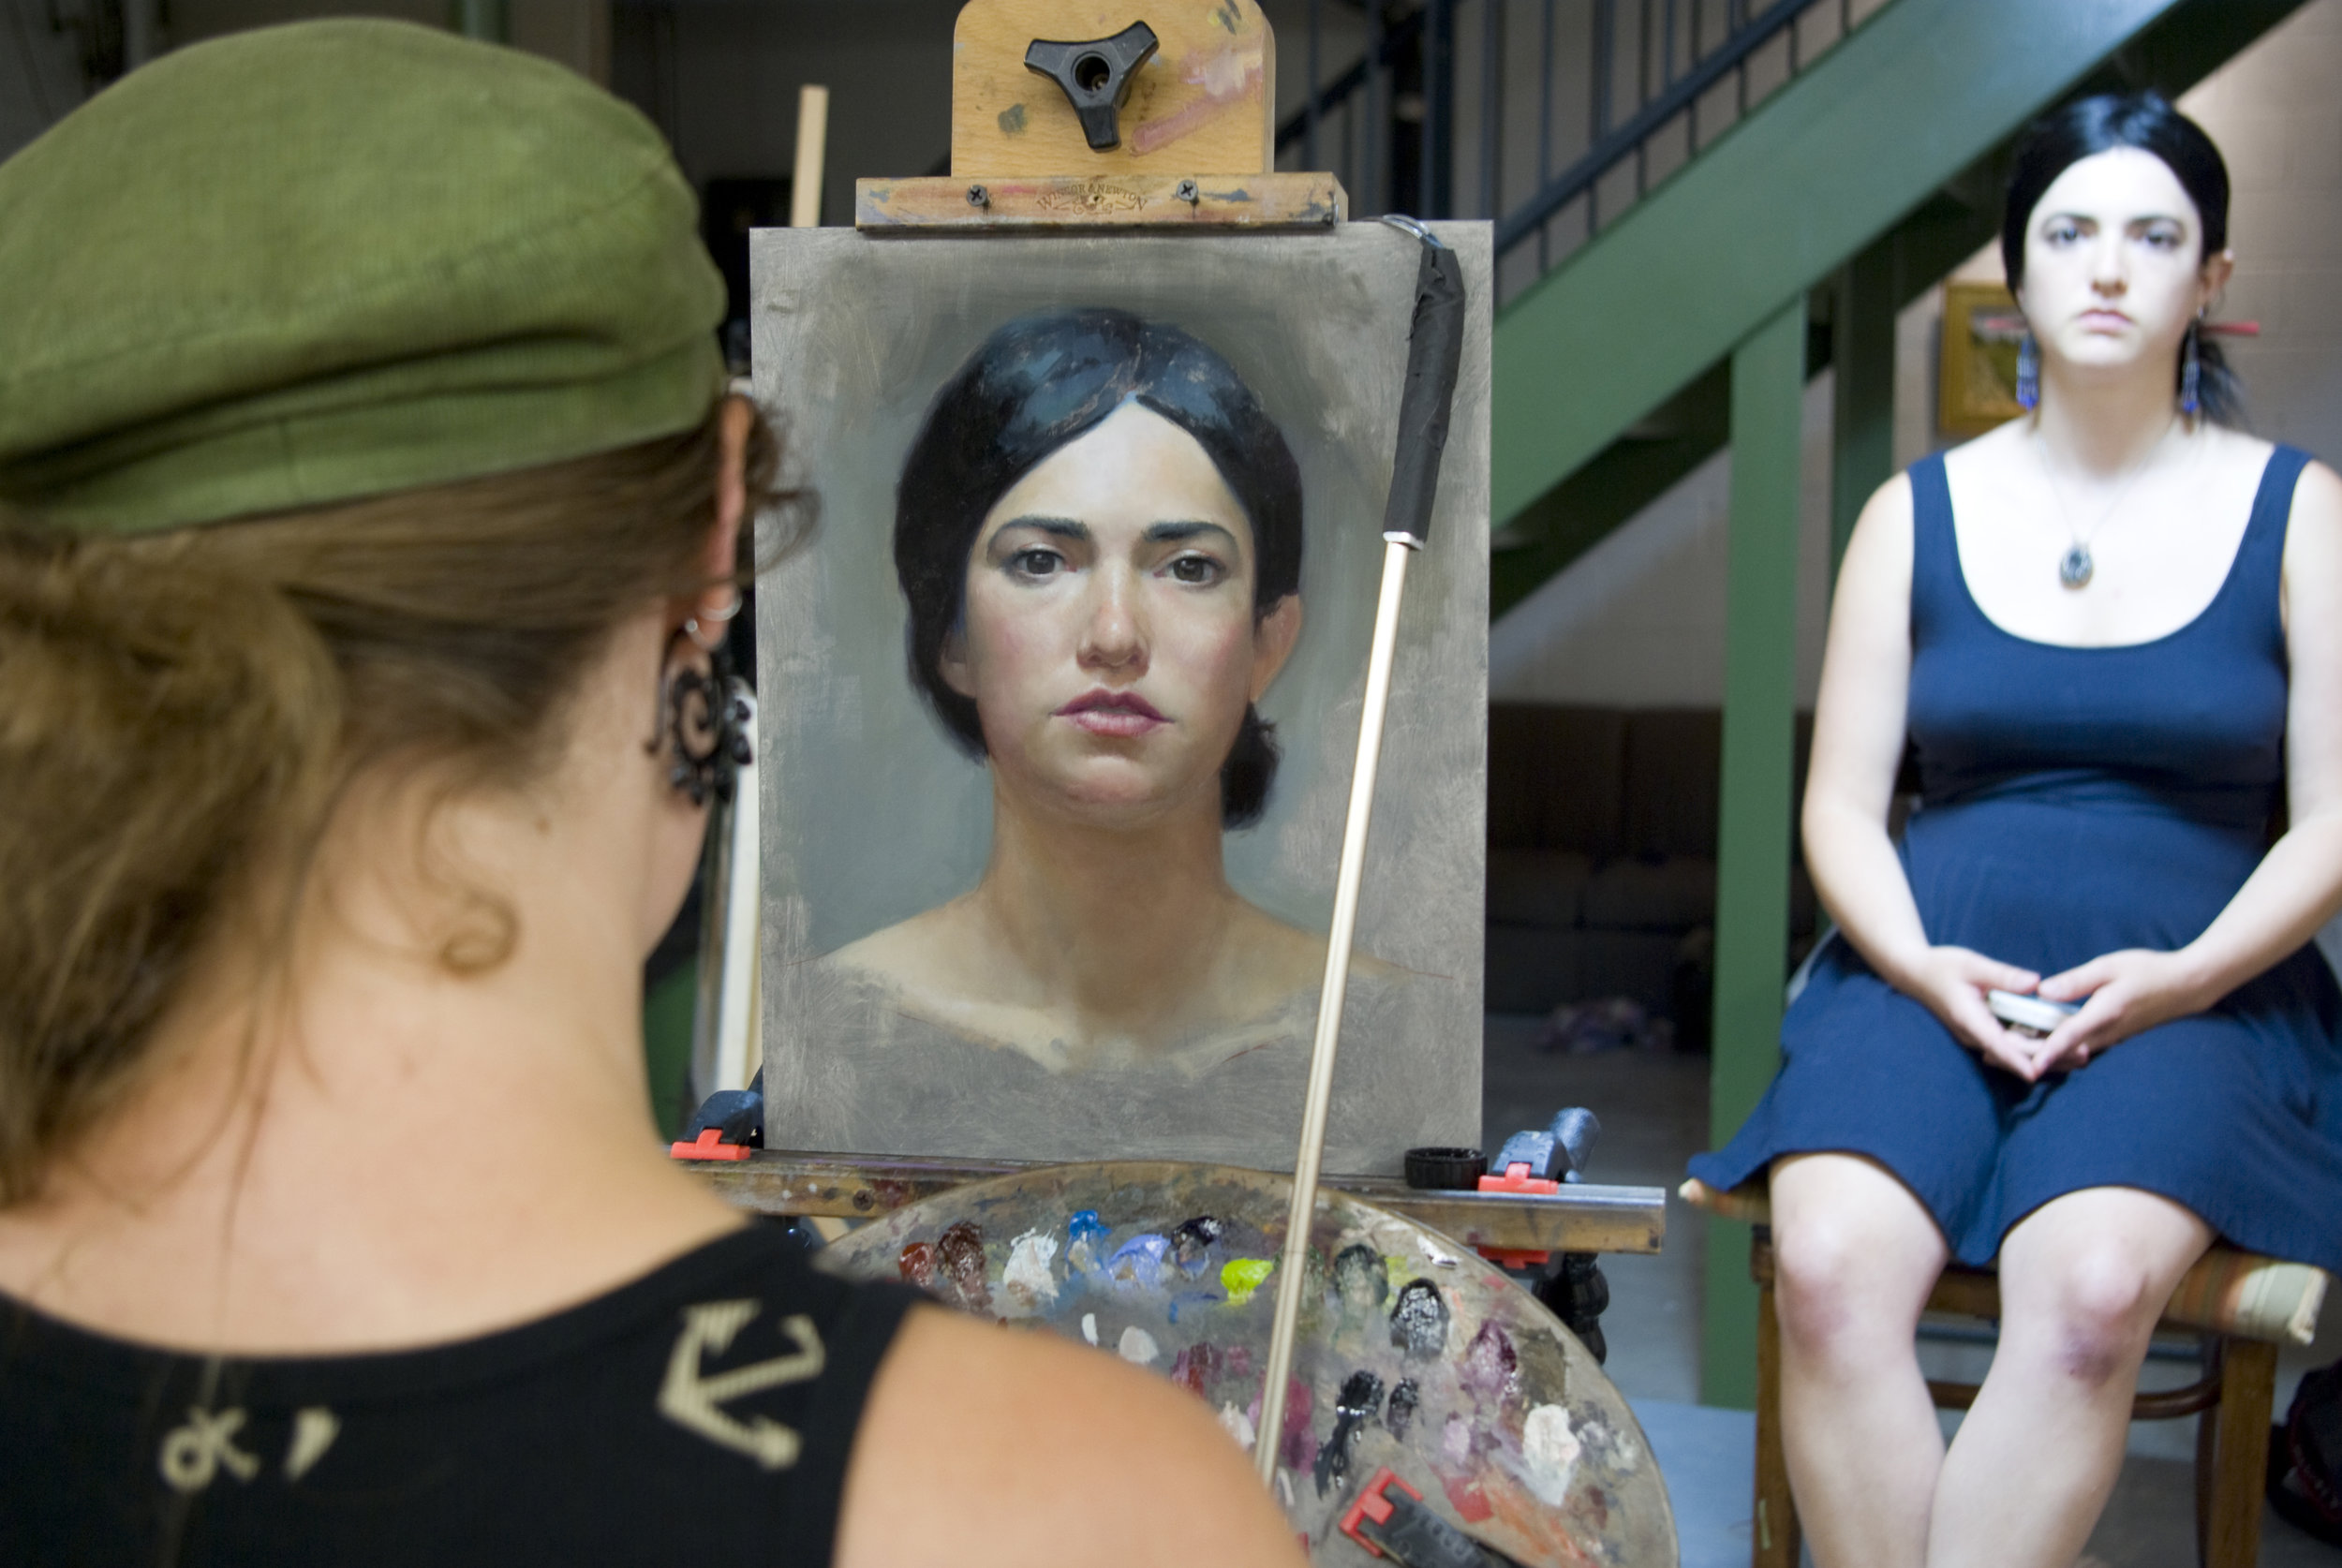 The artist Elizabeth Zanzinger at work in David Kassan's Portrait Painting Workshop. Over the years, we have had many talented figurative artists both study and teach workshops for us. We offer a terrific environment for the serious study of traditional techniques. We welcome artists of all levels and ability.